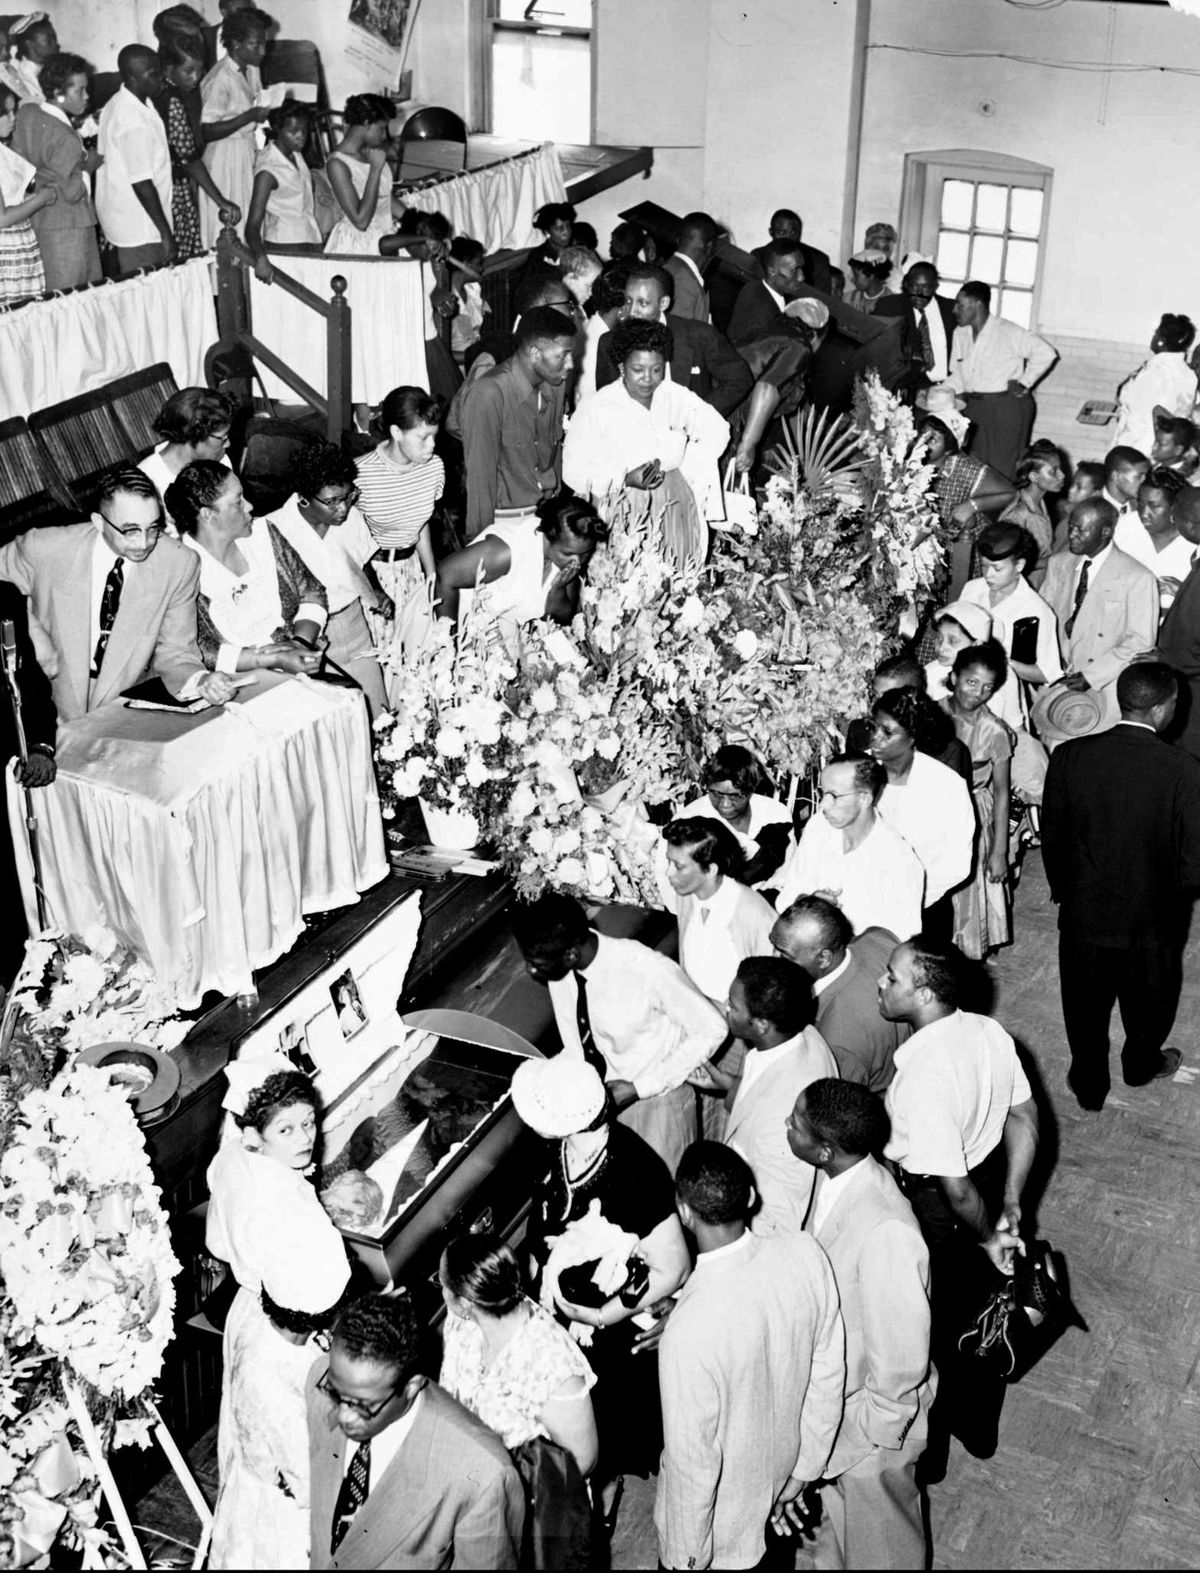 Mourners pass the casket during the funeral Sept. 6, 1955, for 14-year-old Emmett Till at Roberts Temple Church of God in Christ.